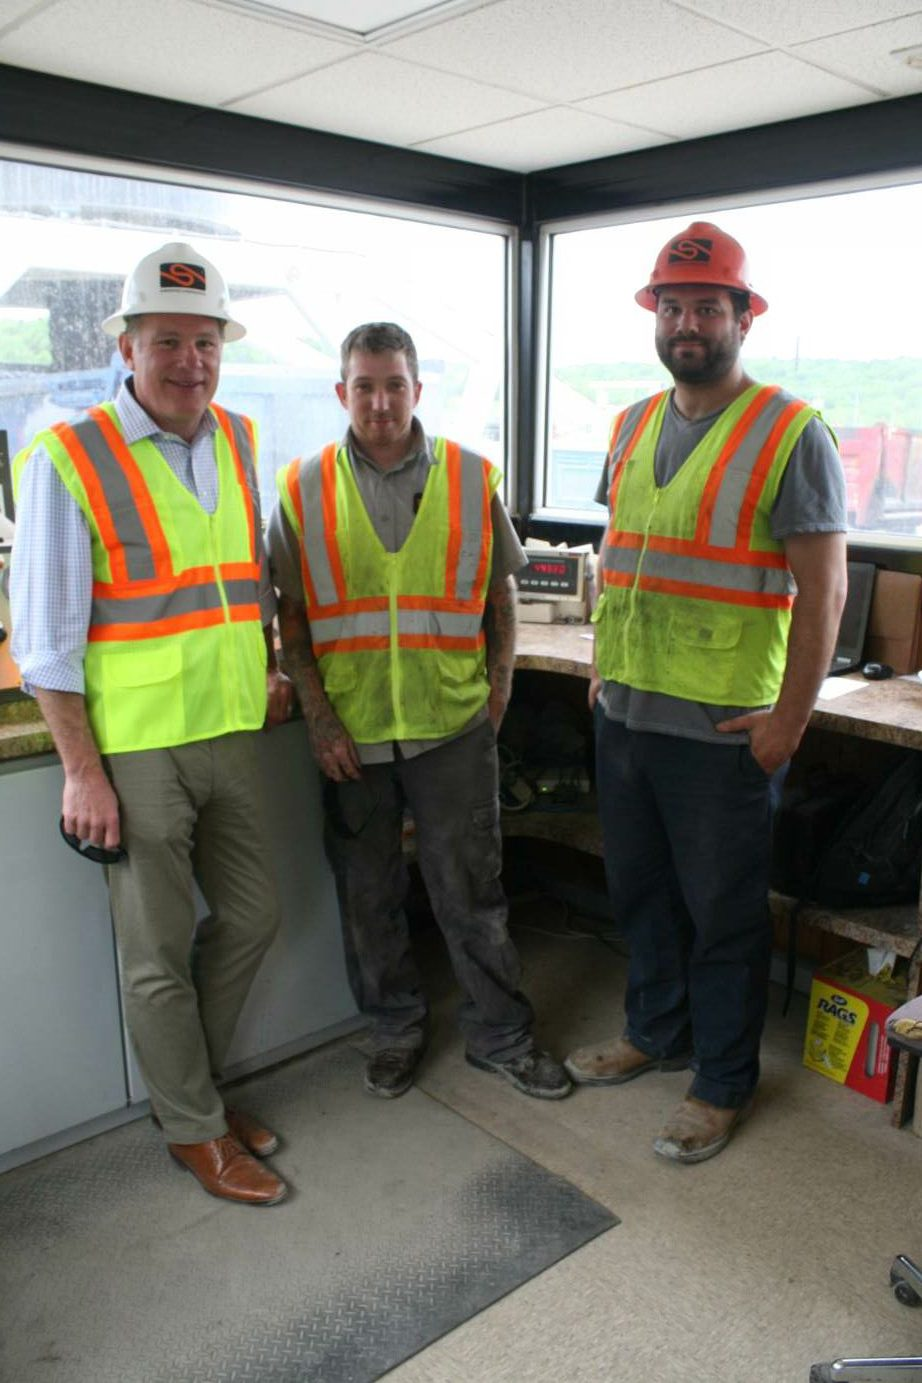 From left: David Sherwood; Chris Wendt, plant operator/site foreman; and Stephen Sherwood, asphalt operations manager